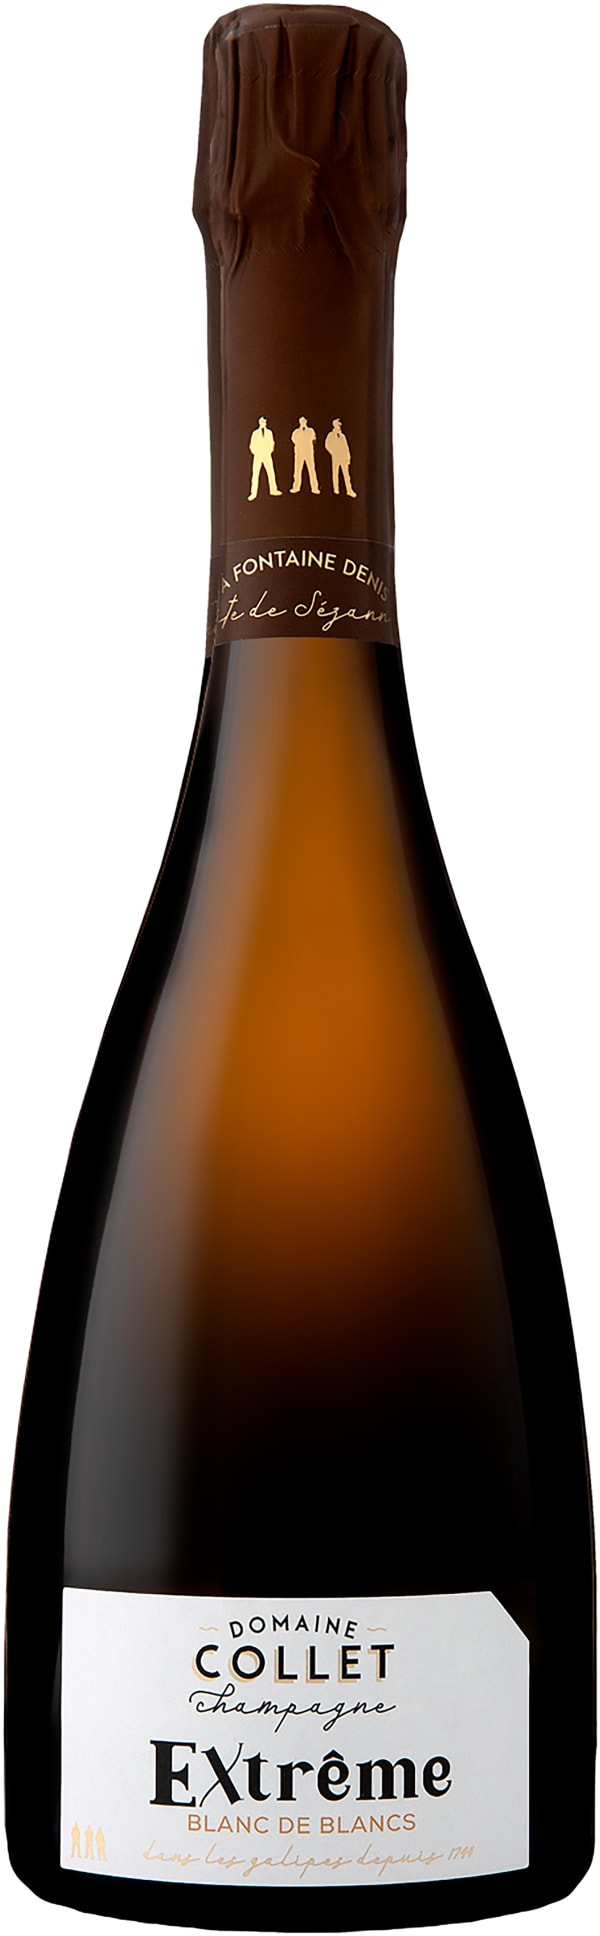 Rene Collet Anthime Extreme Champagne Brut 2013